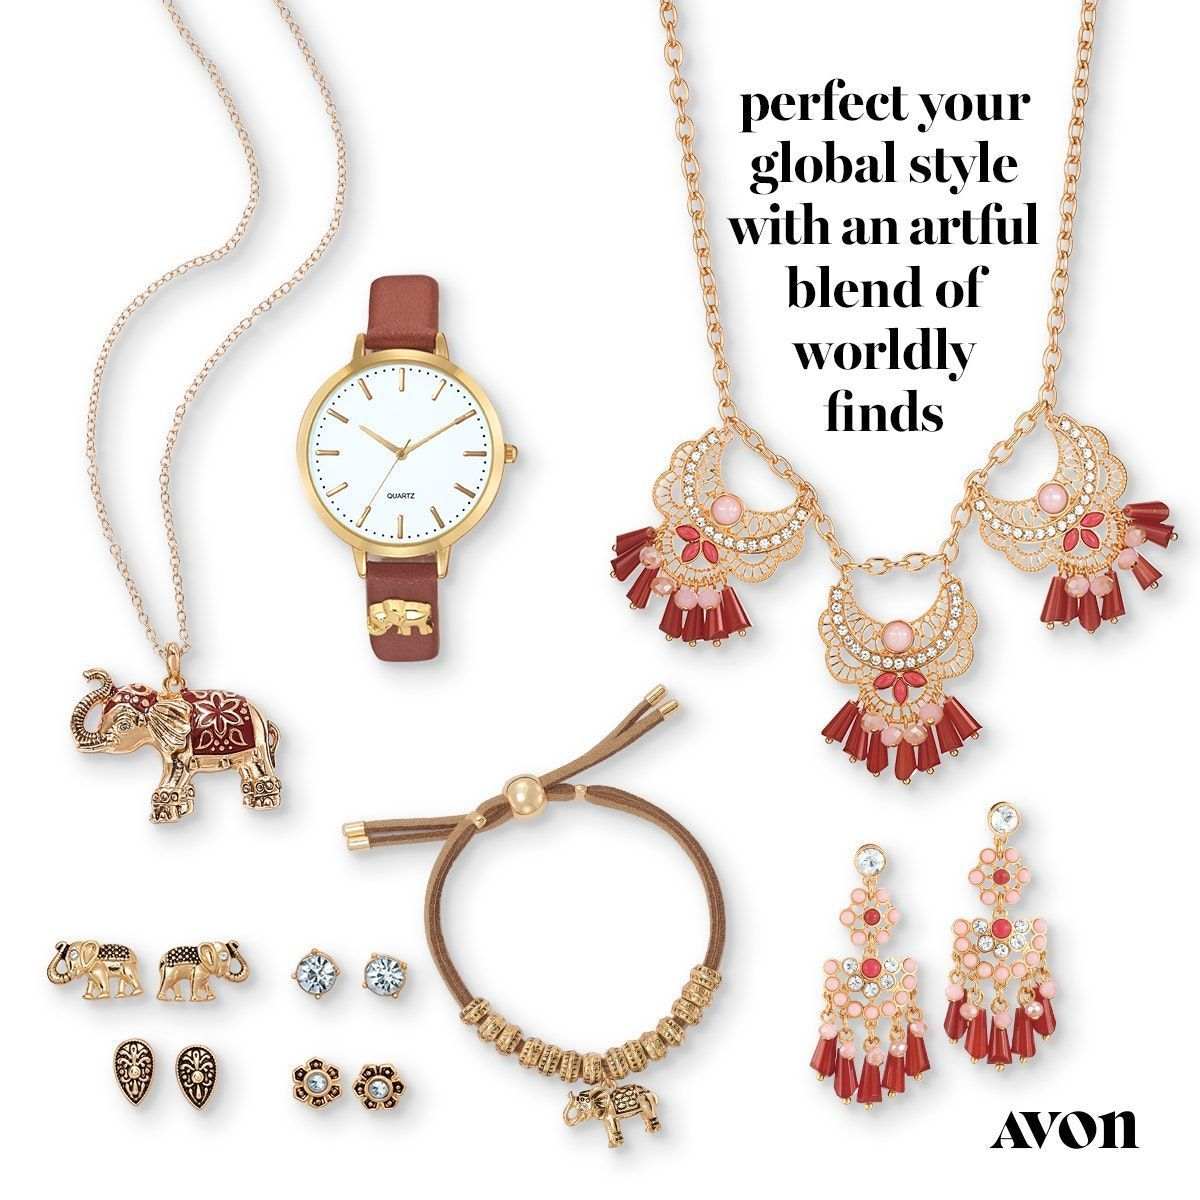 Perfect your global style with this jewelry from Avon! your global style with this jewelry from Avon!